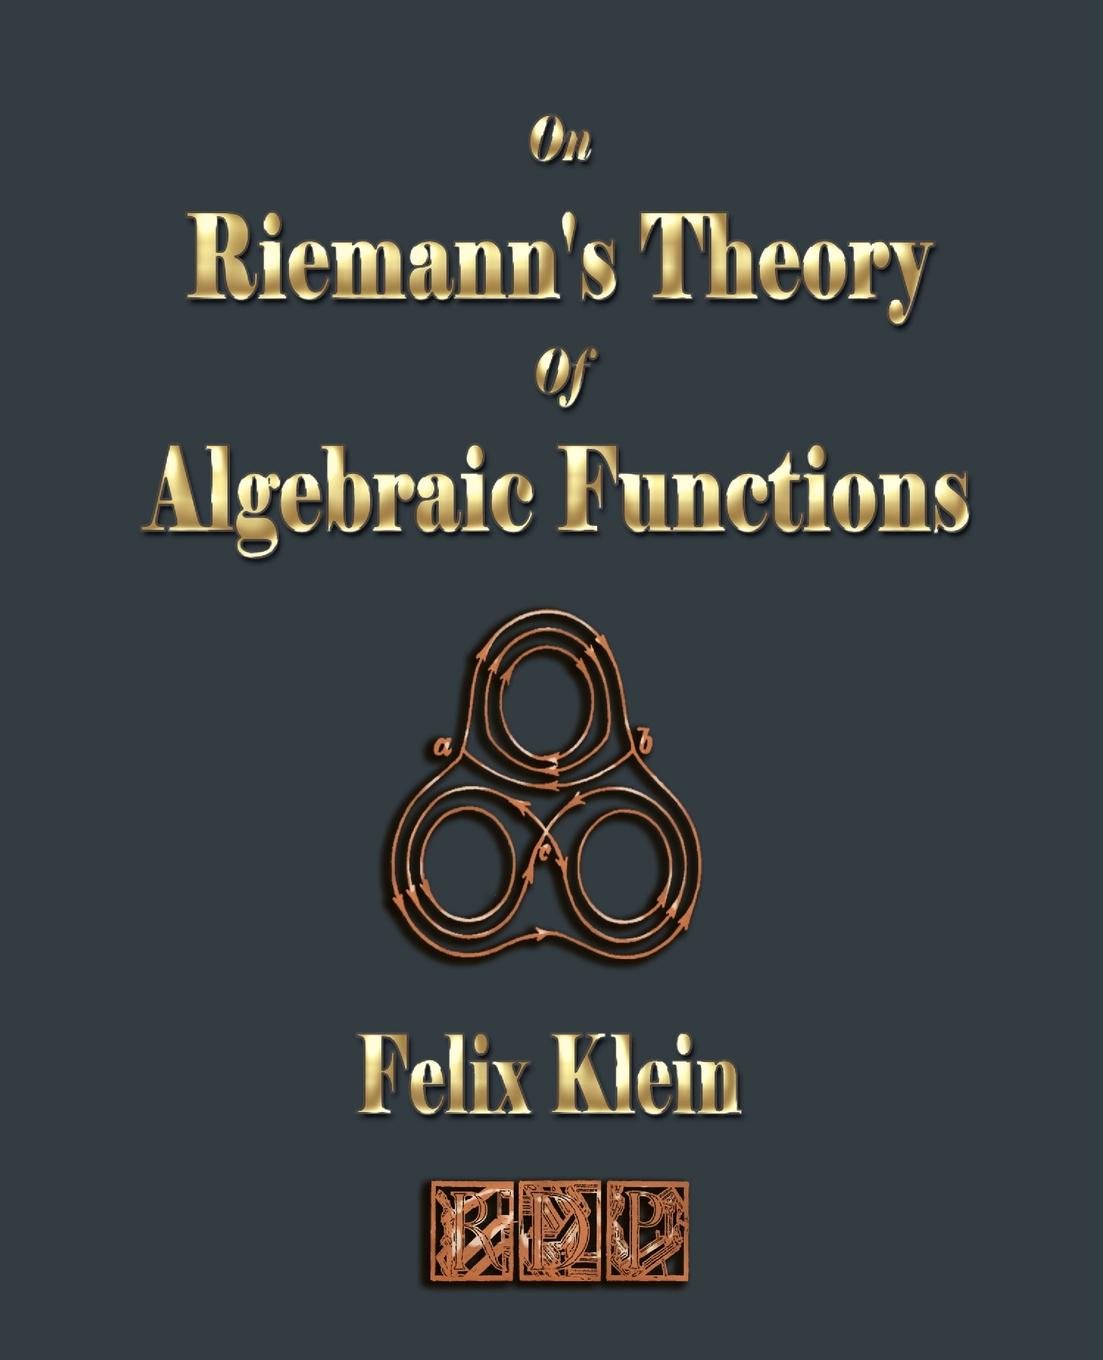 Felix Klein, Frances Hardcastle On Riemann.s Theory Of Algebraic Functions andrei bourchtein counterexamples on uniform convergence sequences series functions and integrals